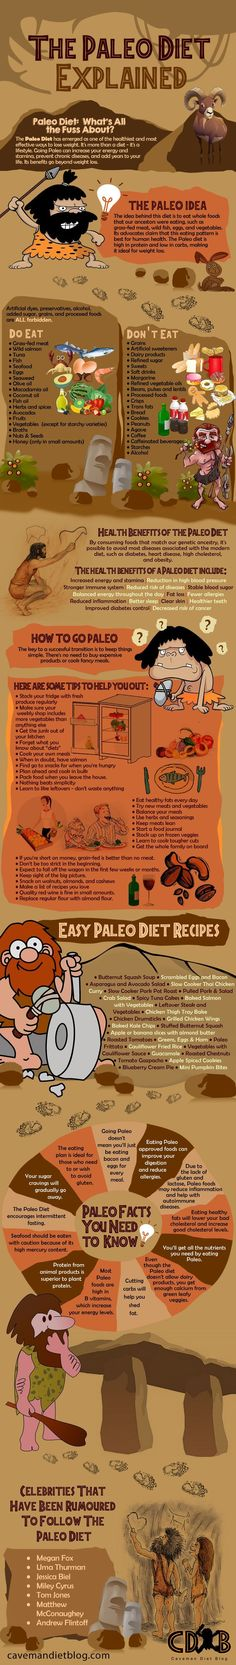 The Paleo Diet Explained - Fantastic infographic full of information about the P.The Paleo Diet Explained - Fantastic infographic full of information about the Paleo diet paleo diet for beginners Paleo On The Go, How To Eat Paleo, Going Paleo, Paleo Diet For Beginners, Beginner Paleo, Paleo Diet Plan, Diet Plans, Paleo Life, Nutrition